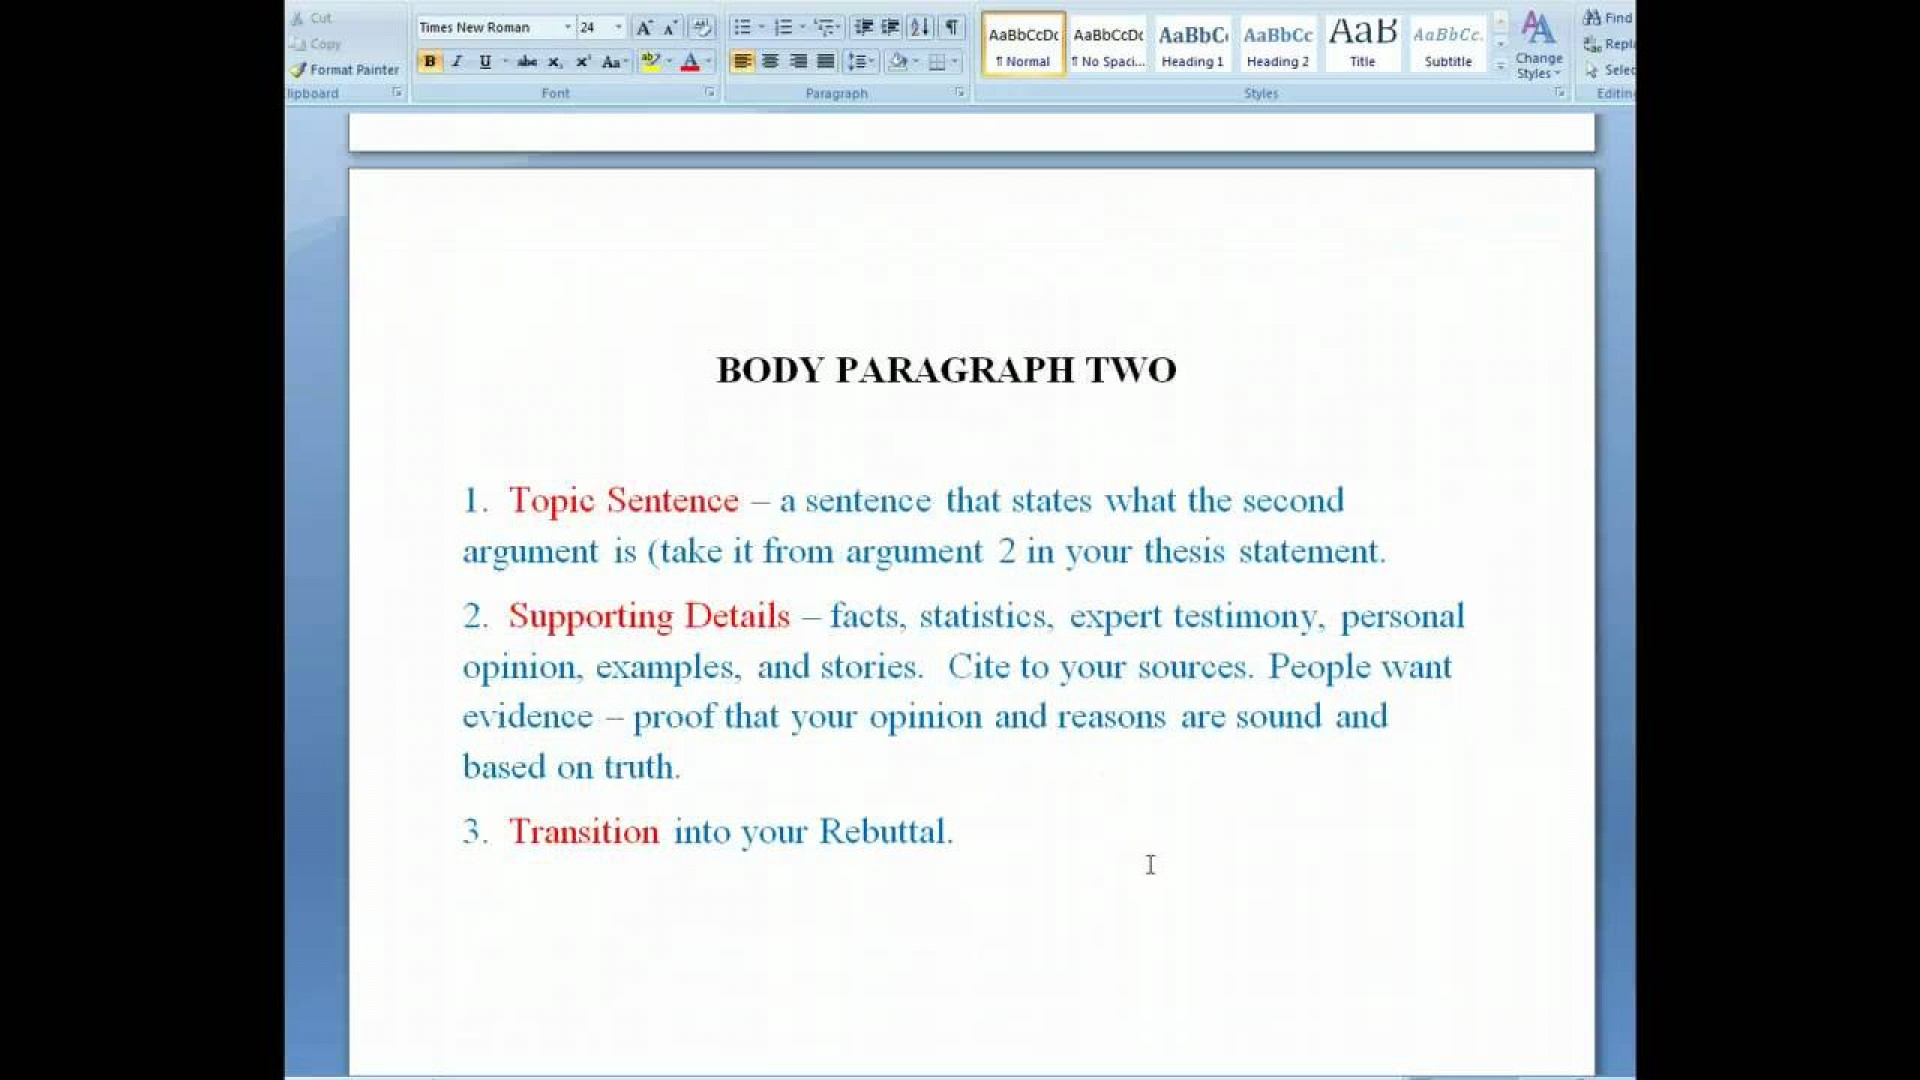 019 Argumentative Research Essay Example Phenomenal Structure Medical Topics 1920